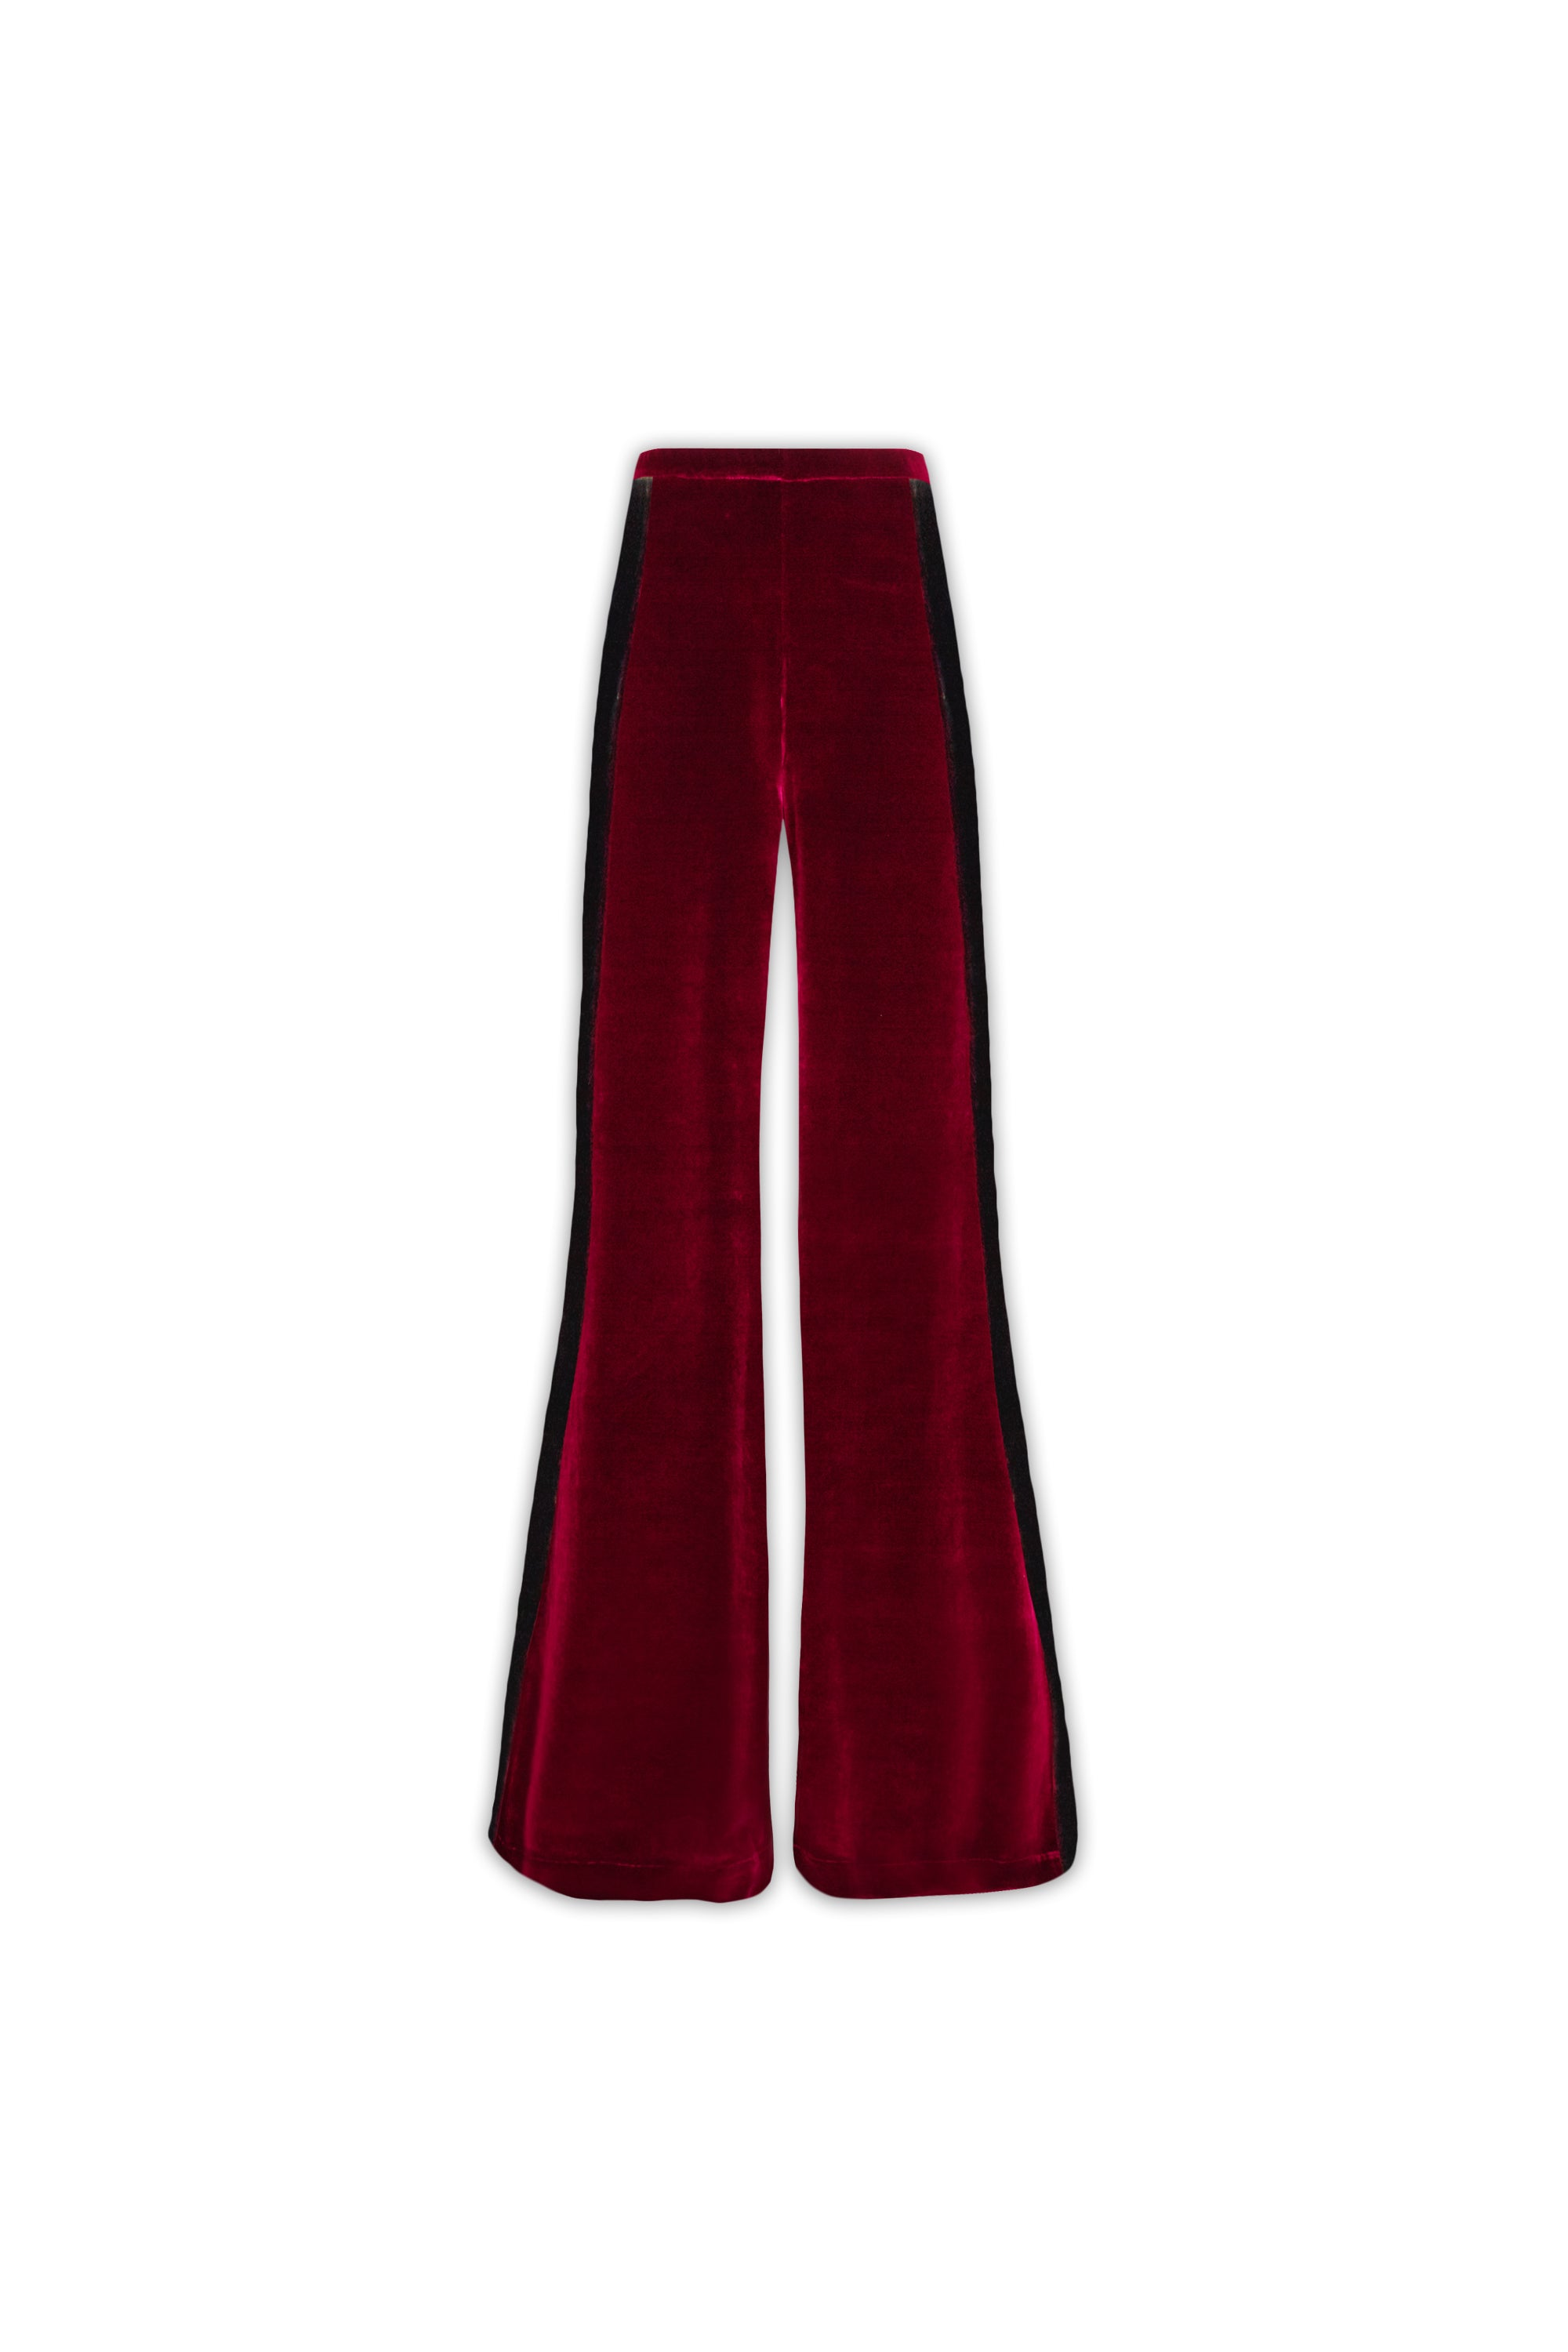 The Flare Trousers - Burgundy & Black Stretch Velvet